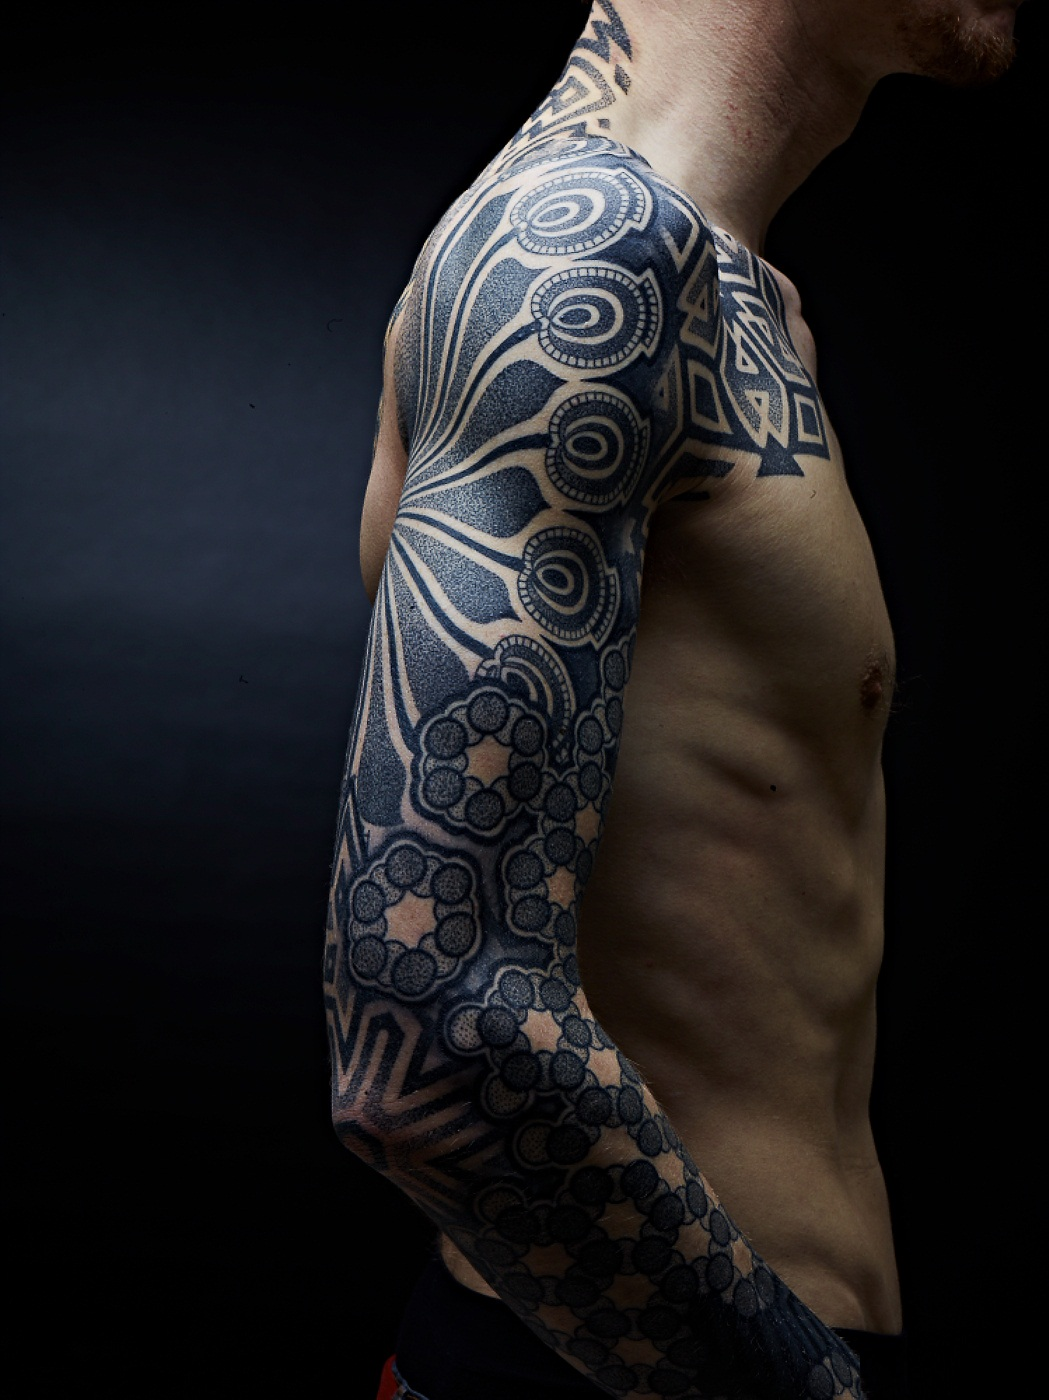 Best tattoo designs for men in 2016 the xerxes for Male sleeve tattoo ideas